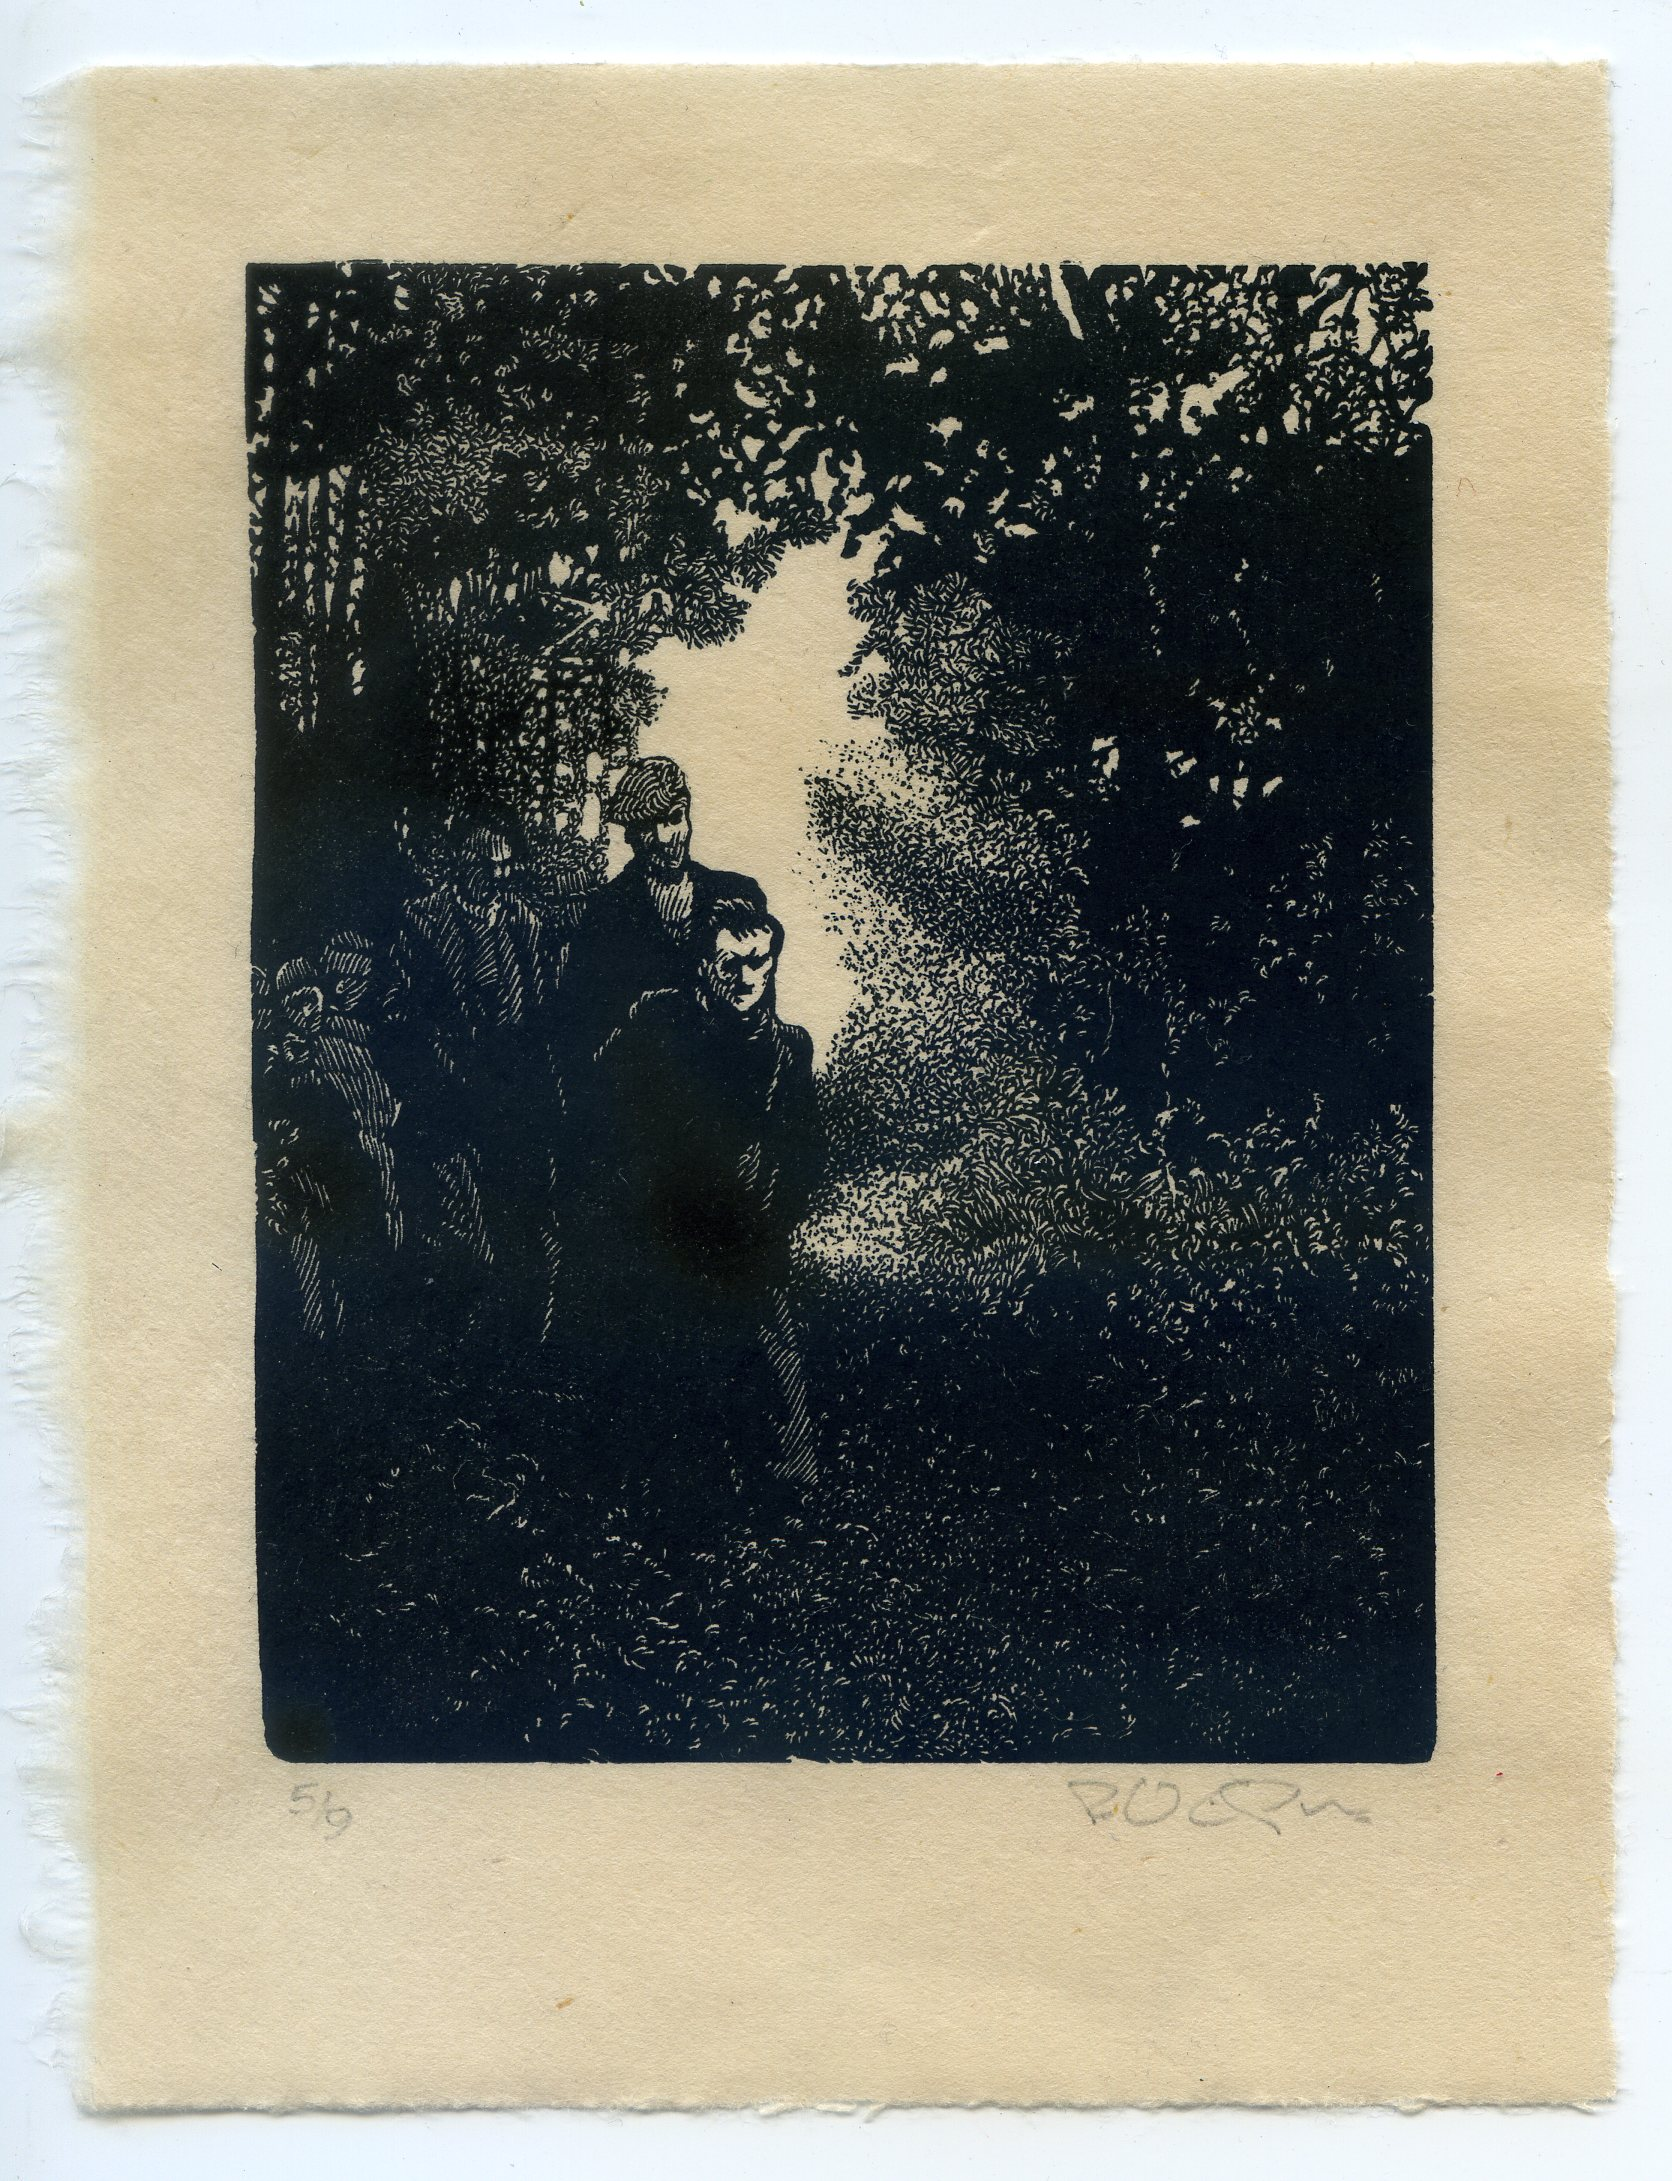 OUT OF THE SHADOWS wood engraving